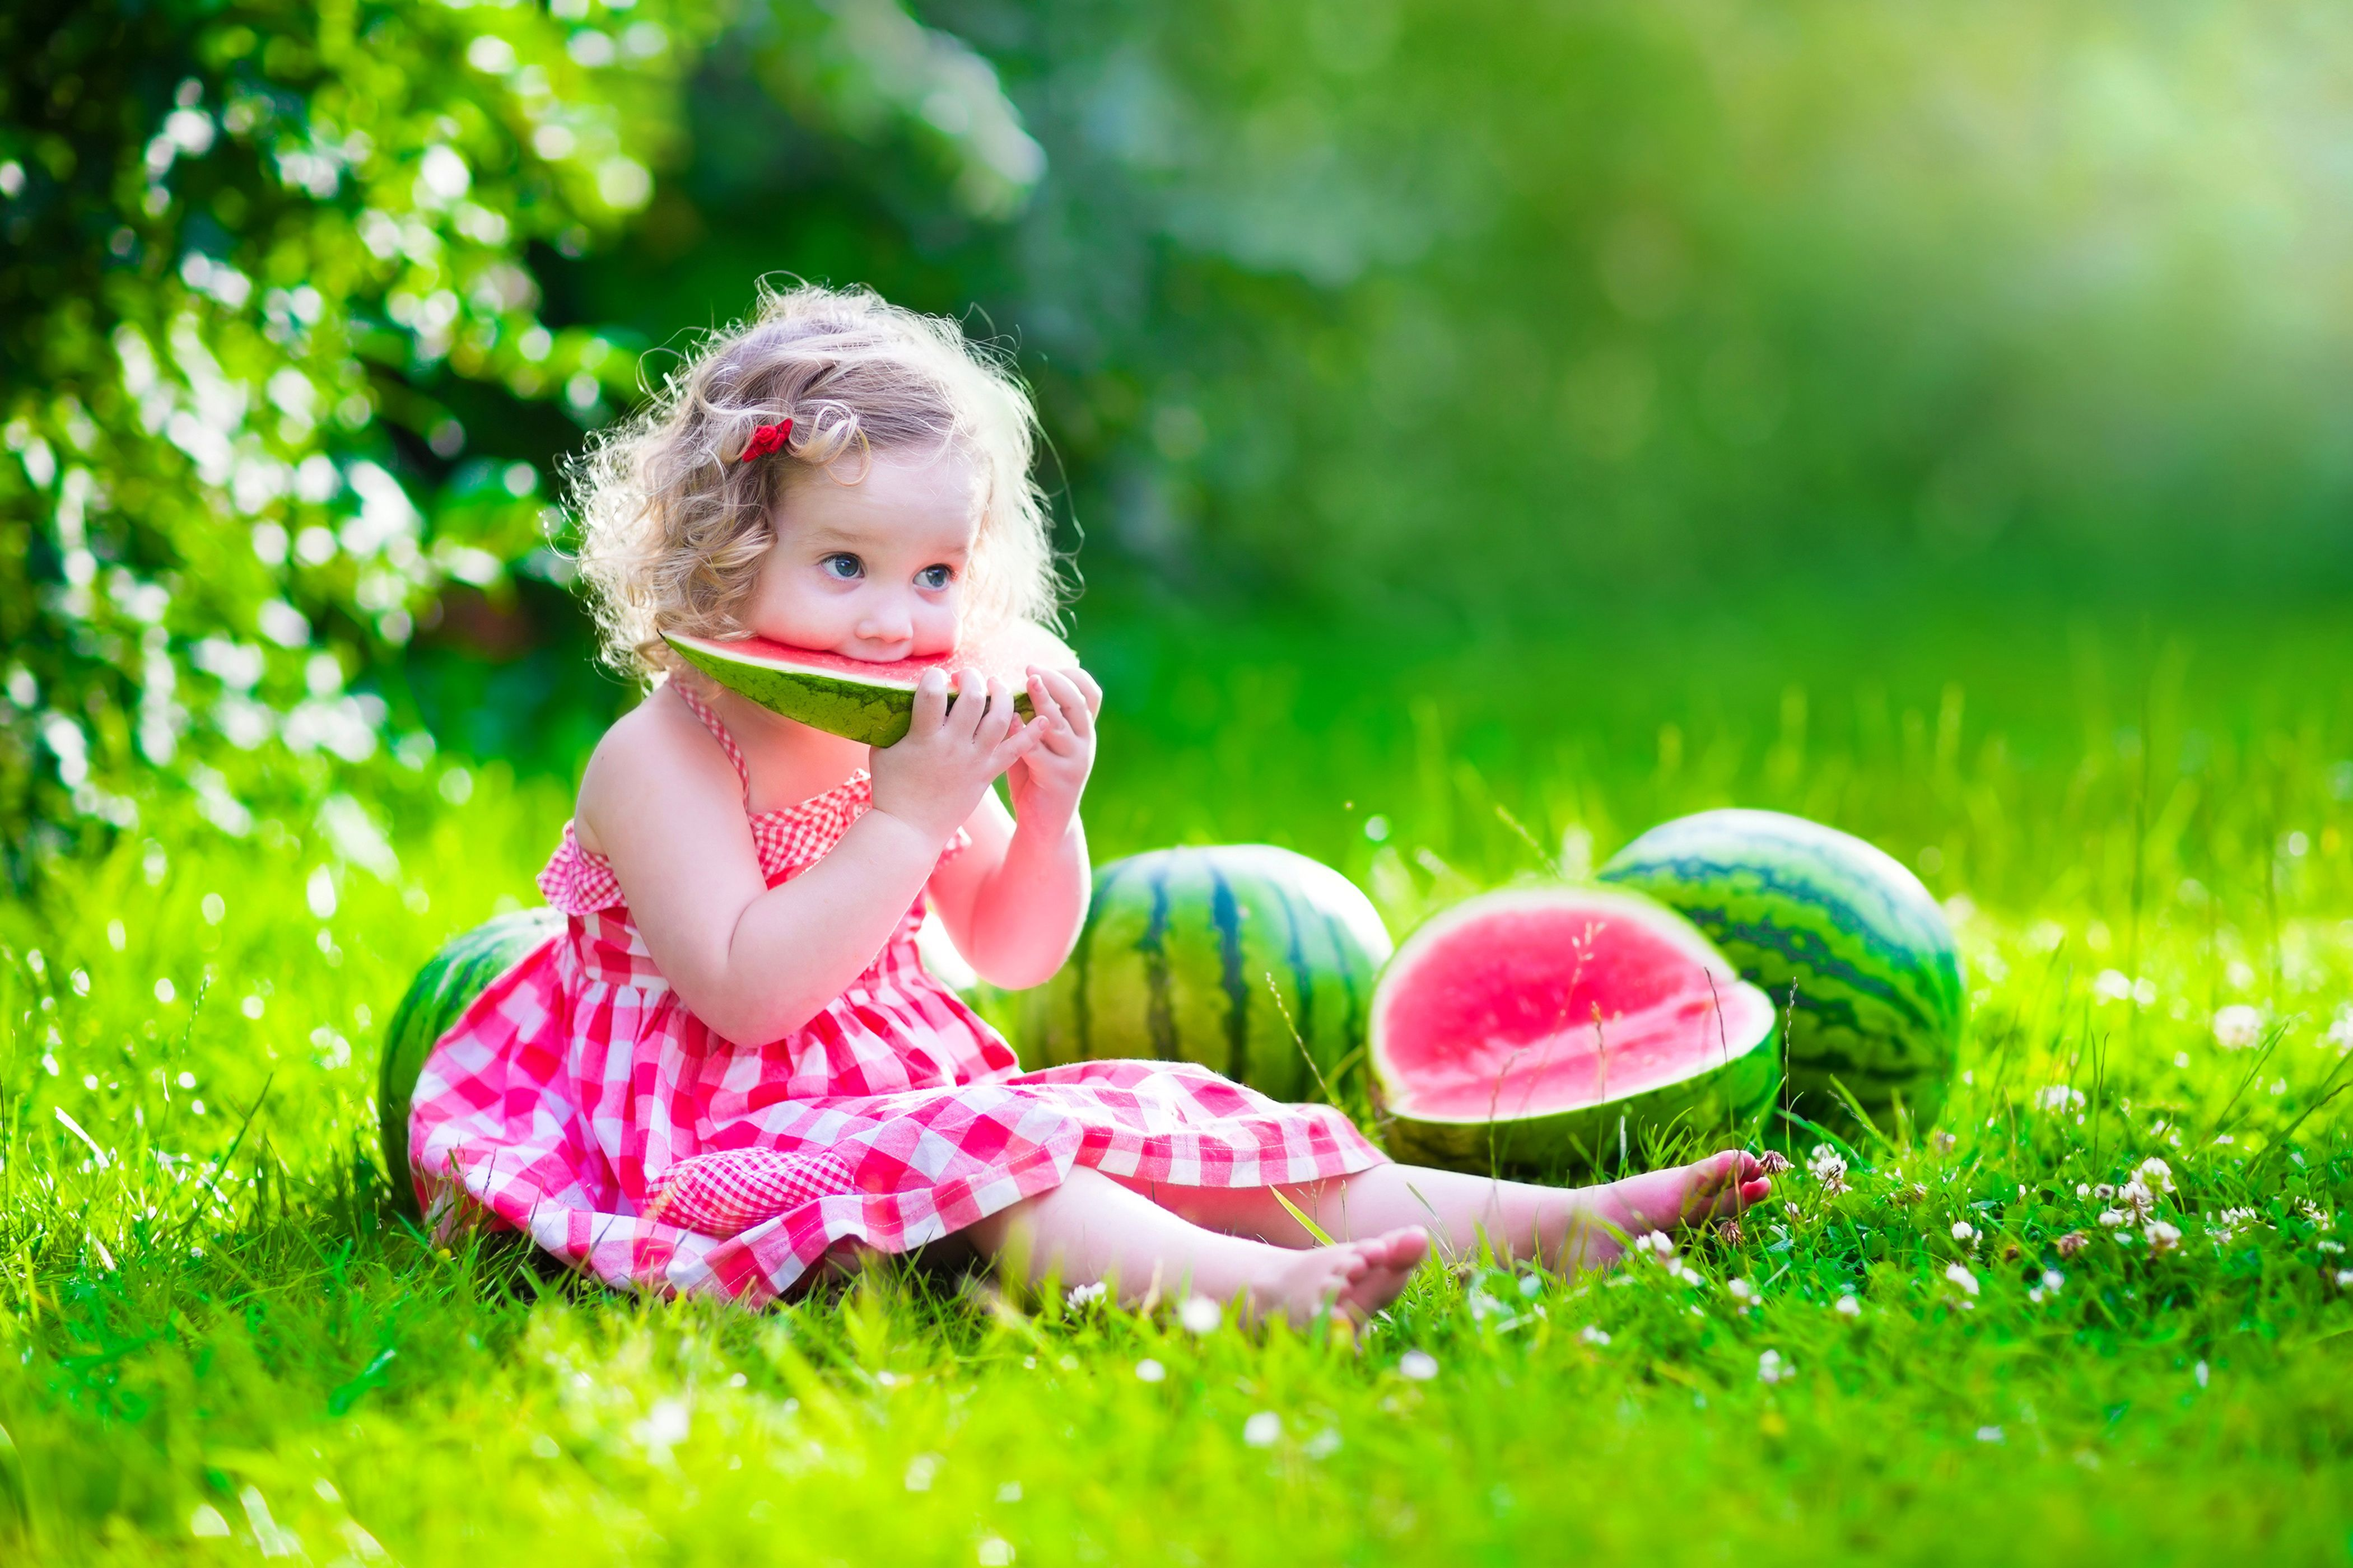 Cute Baby Girl Wallpaper Hd Download For Desktop Mobile Baby Girl Wallpaper Cute Baby Girl Wallpaper Watermelon Photo Shoots